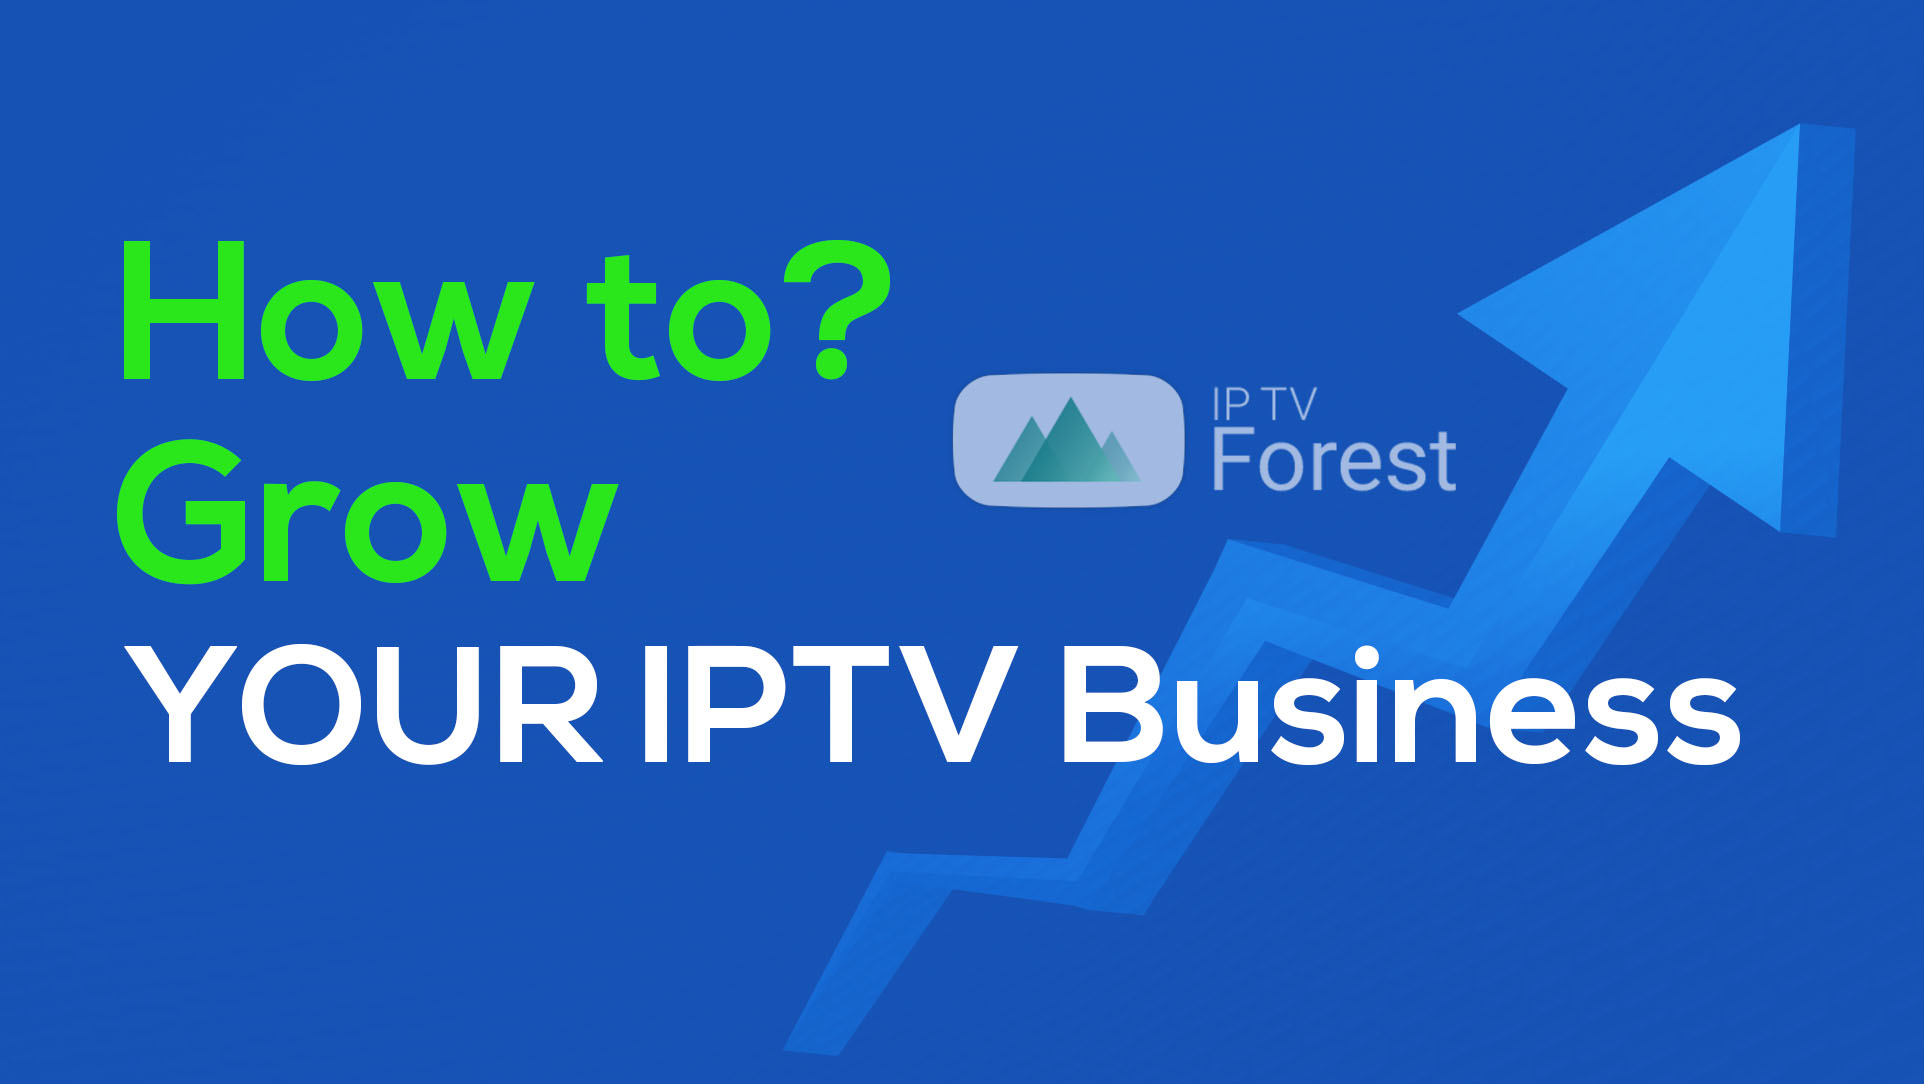 Grow your IPTV business